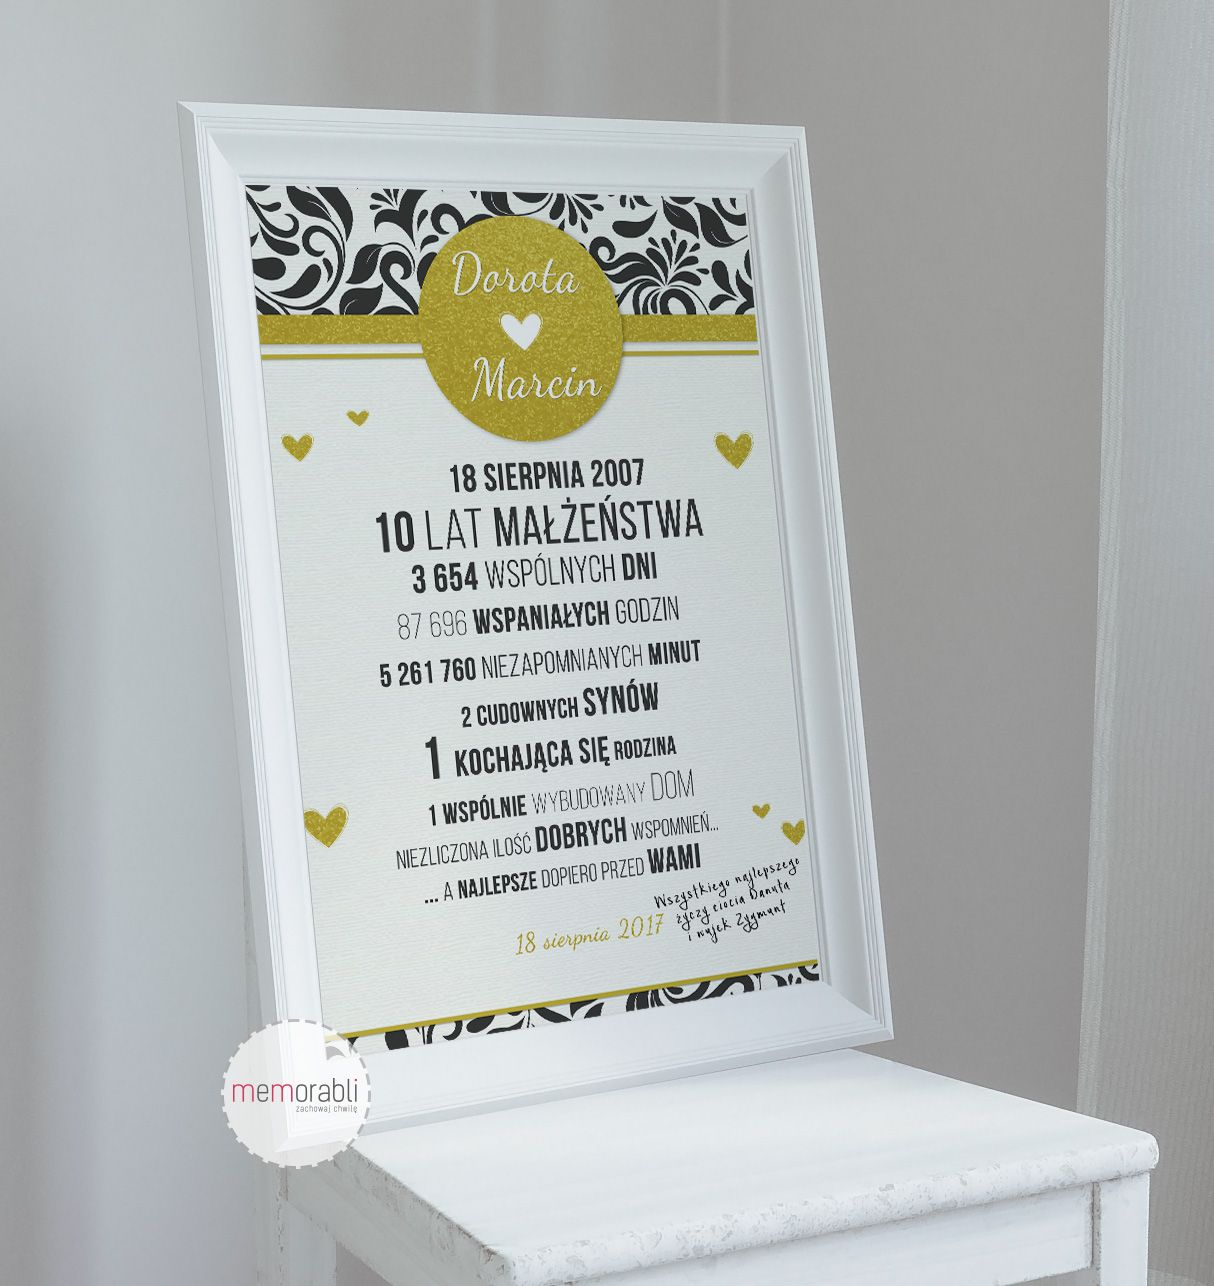 Plakat Na Rocznice Slubu Walentynki Love Wedding Rocznica Valentinesday Anniversary Memorabli Handmade Plakaty Poster Nasc Diy And Crafts Gifts Diy